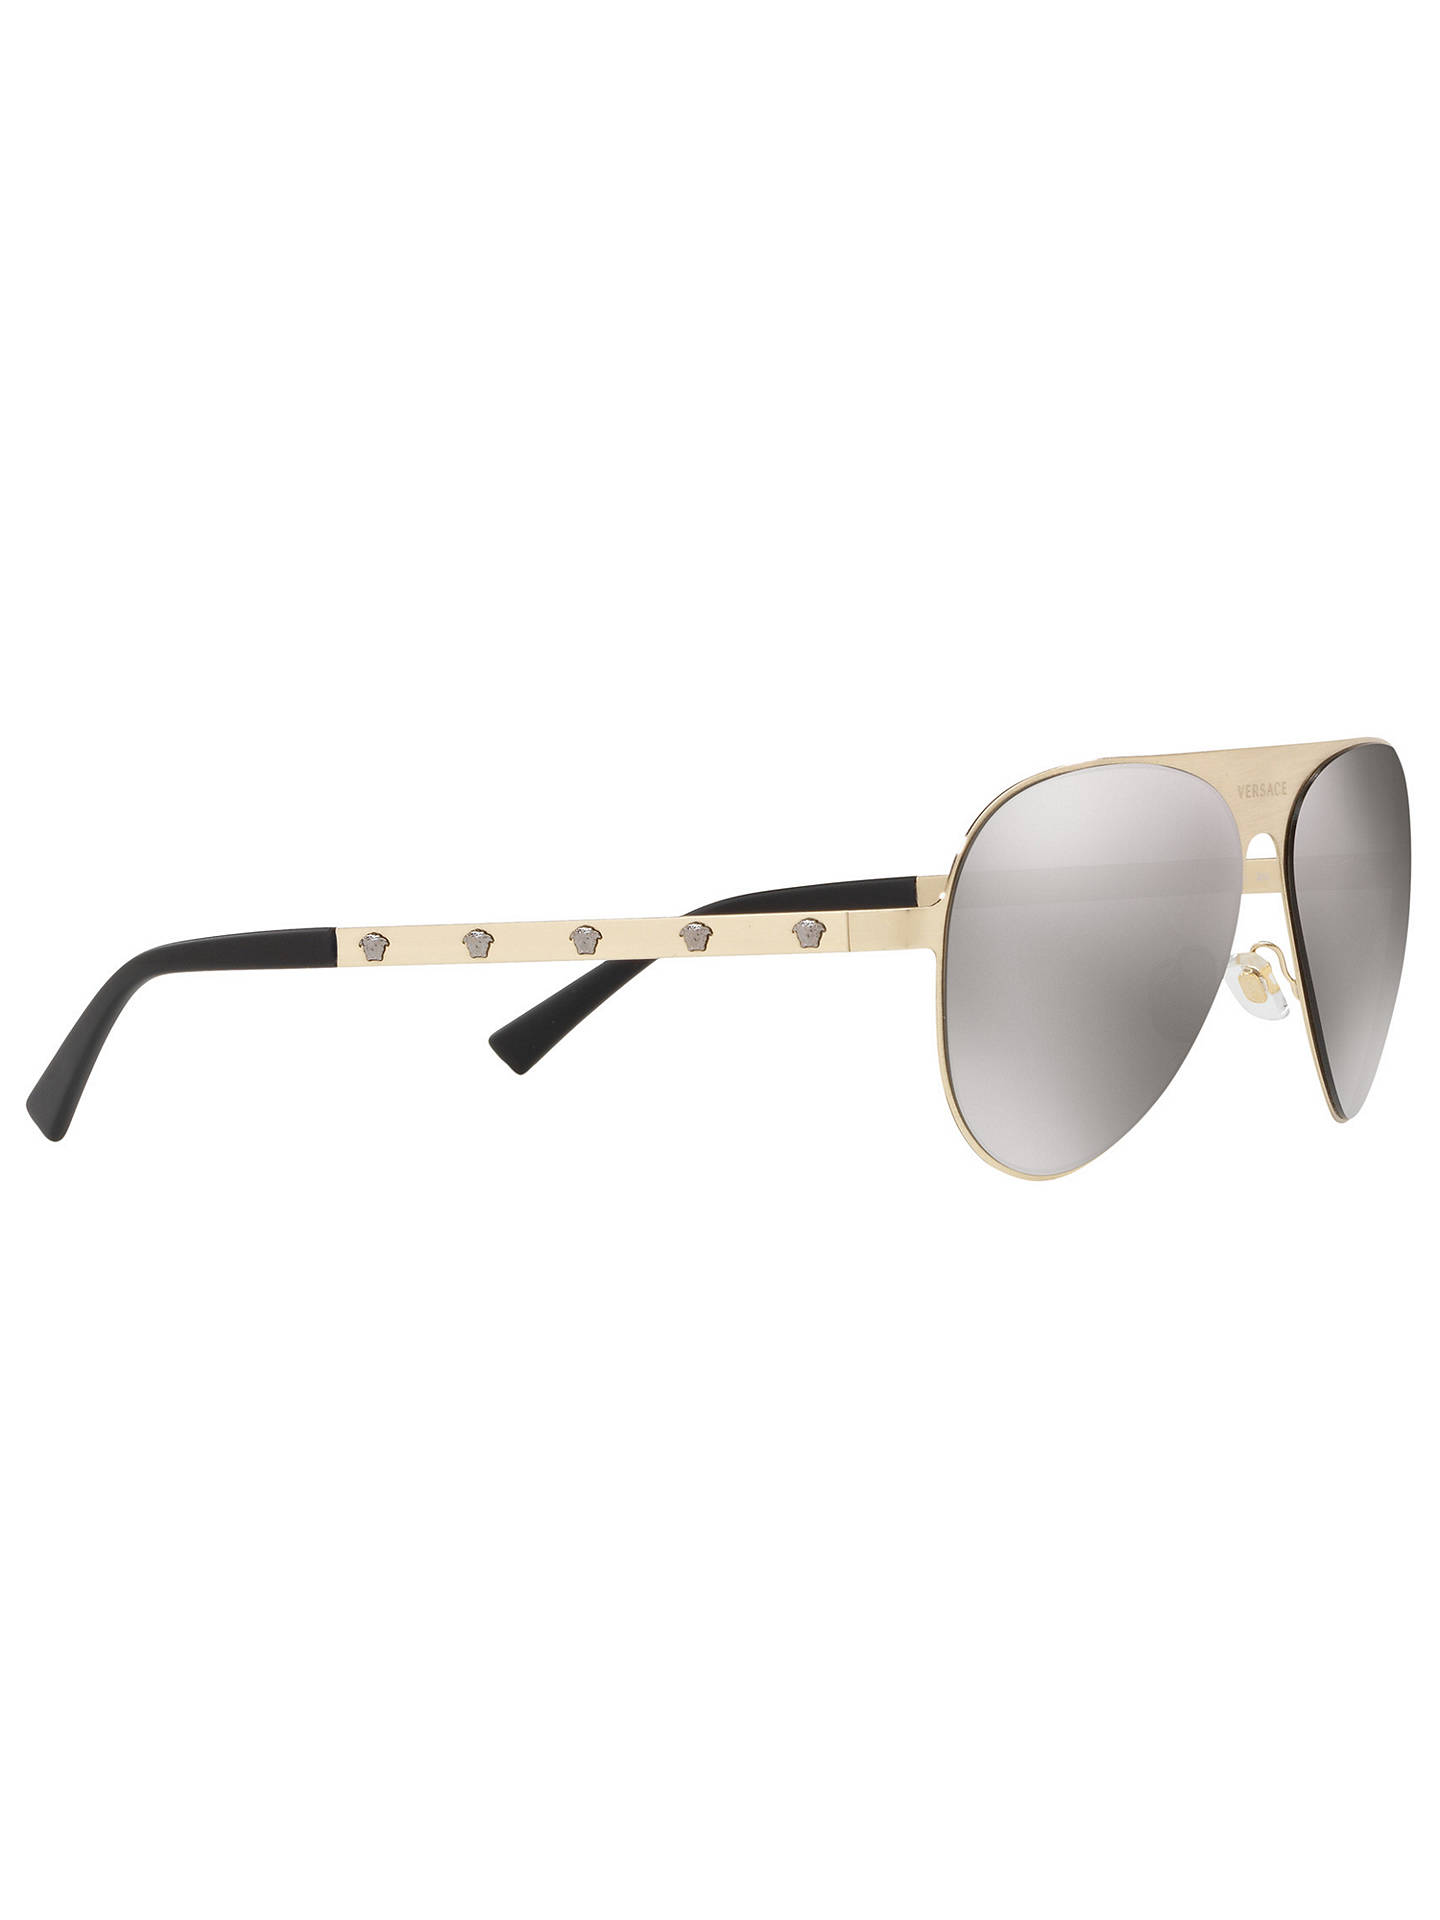 71c830edf719 ... Buy Versace VE2189 Unisex Polarised Embellished Aviator Sunglasses,  Pale Gold/Light Brown Online at